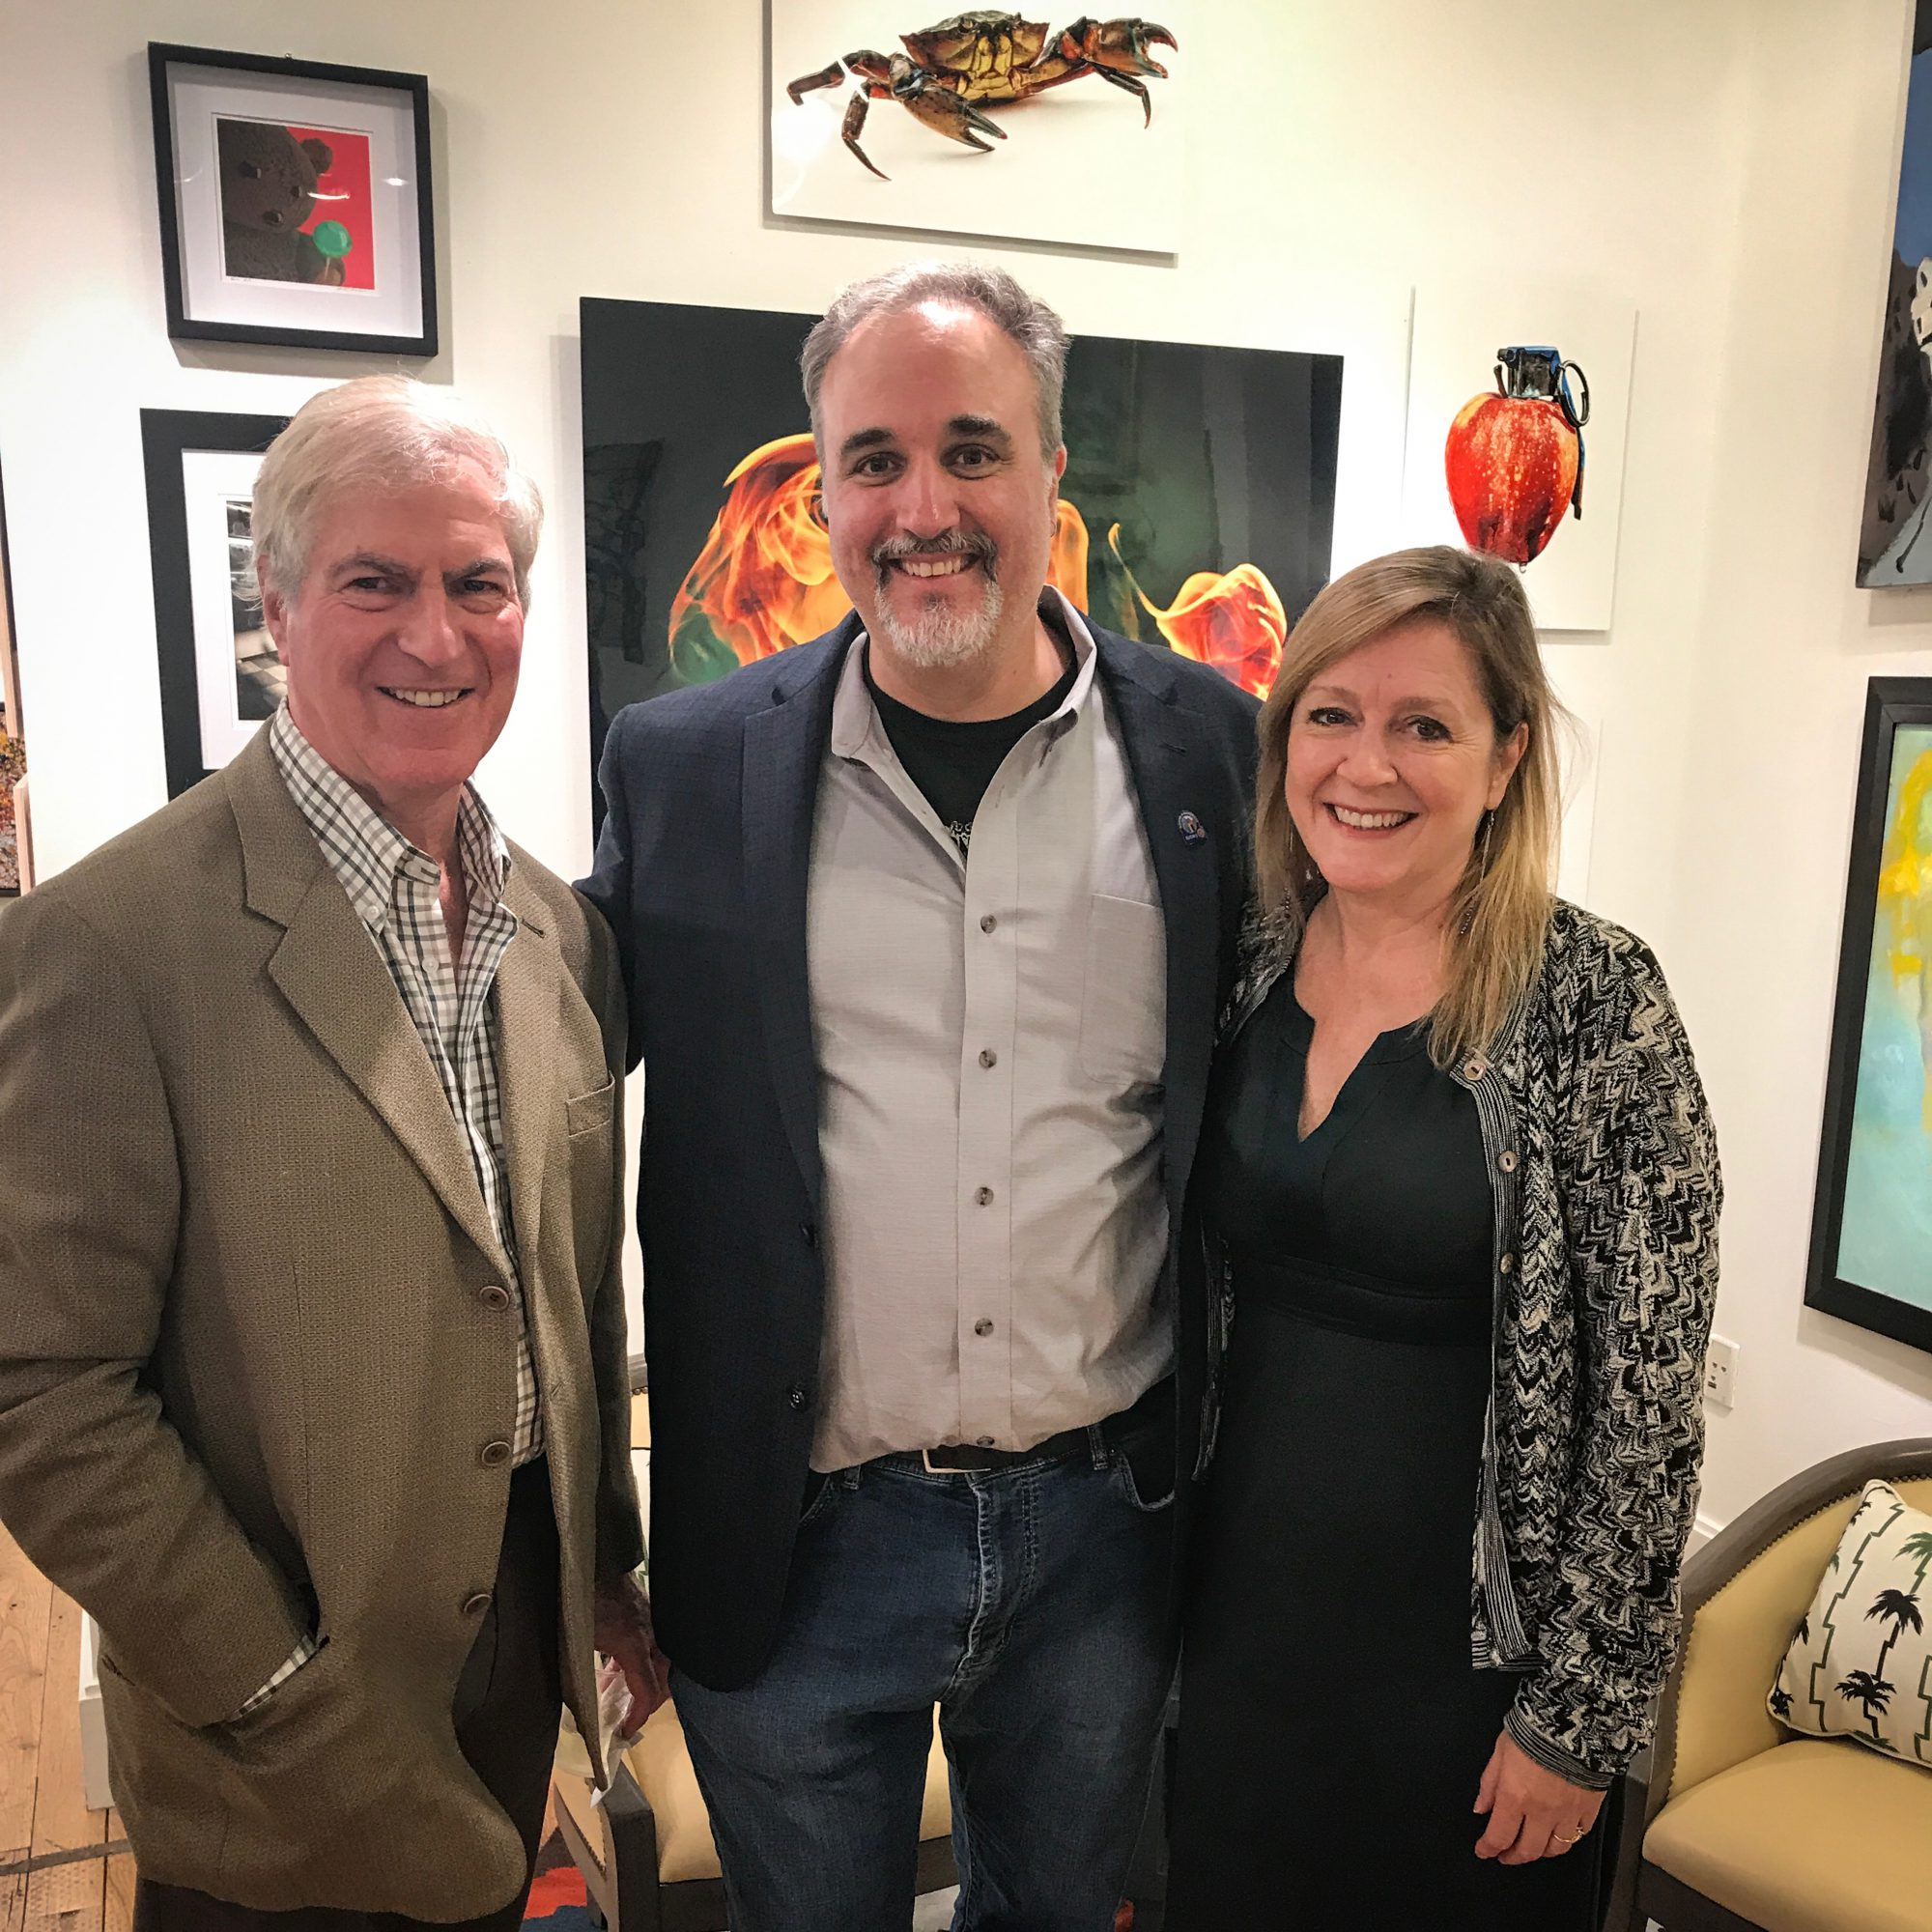 Me, in between, Tim Montgomery and Rita Fucillo, publishers of Art New England